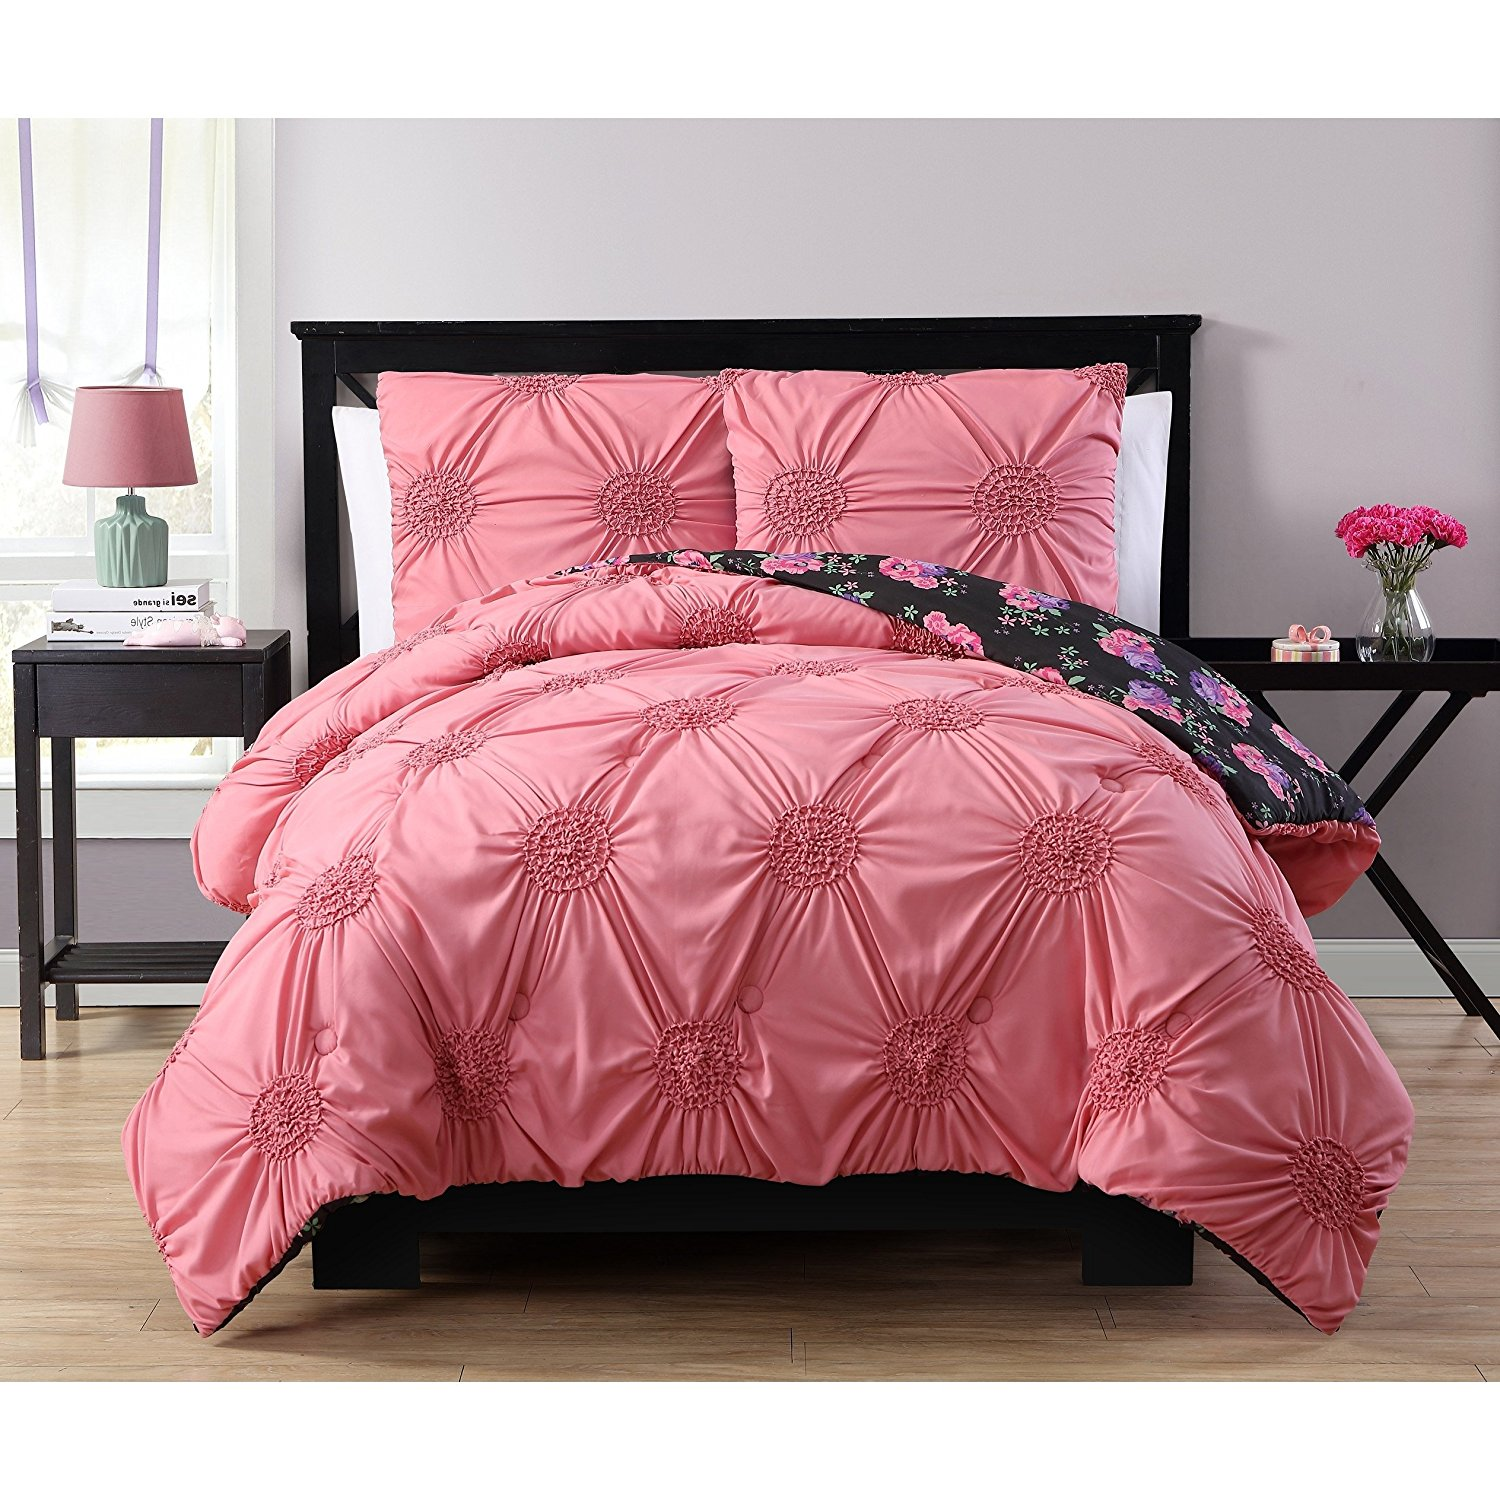 2 Piece Girls Black Pink Purple Floral Themed Comforter Twin Set, Girly All Over Flower Garden Bedding, Chic Diamond Tuft Pinned Tuck Tufted Pin Tucked Pinch Pleated Gathered Textured, Polyester